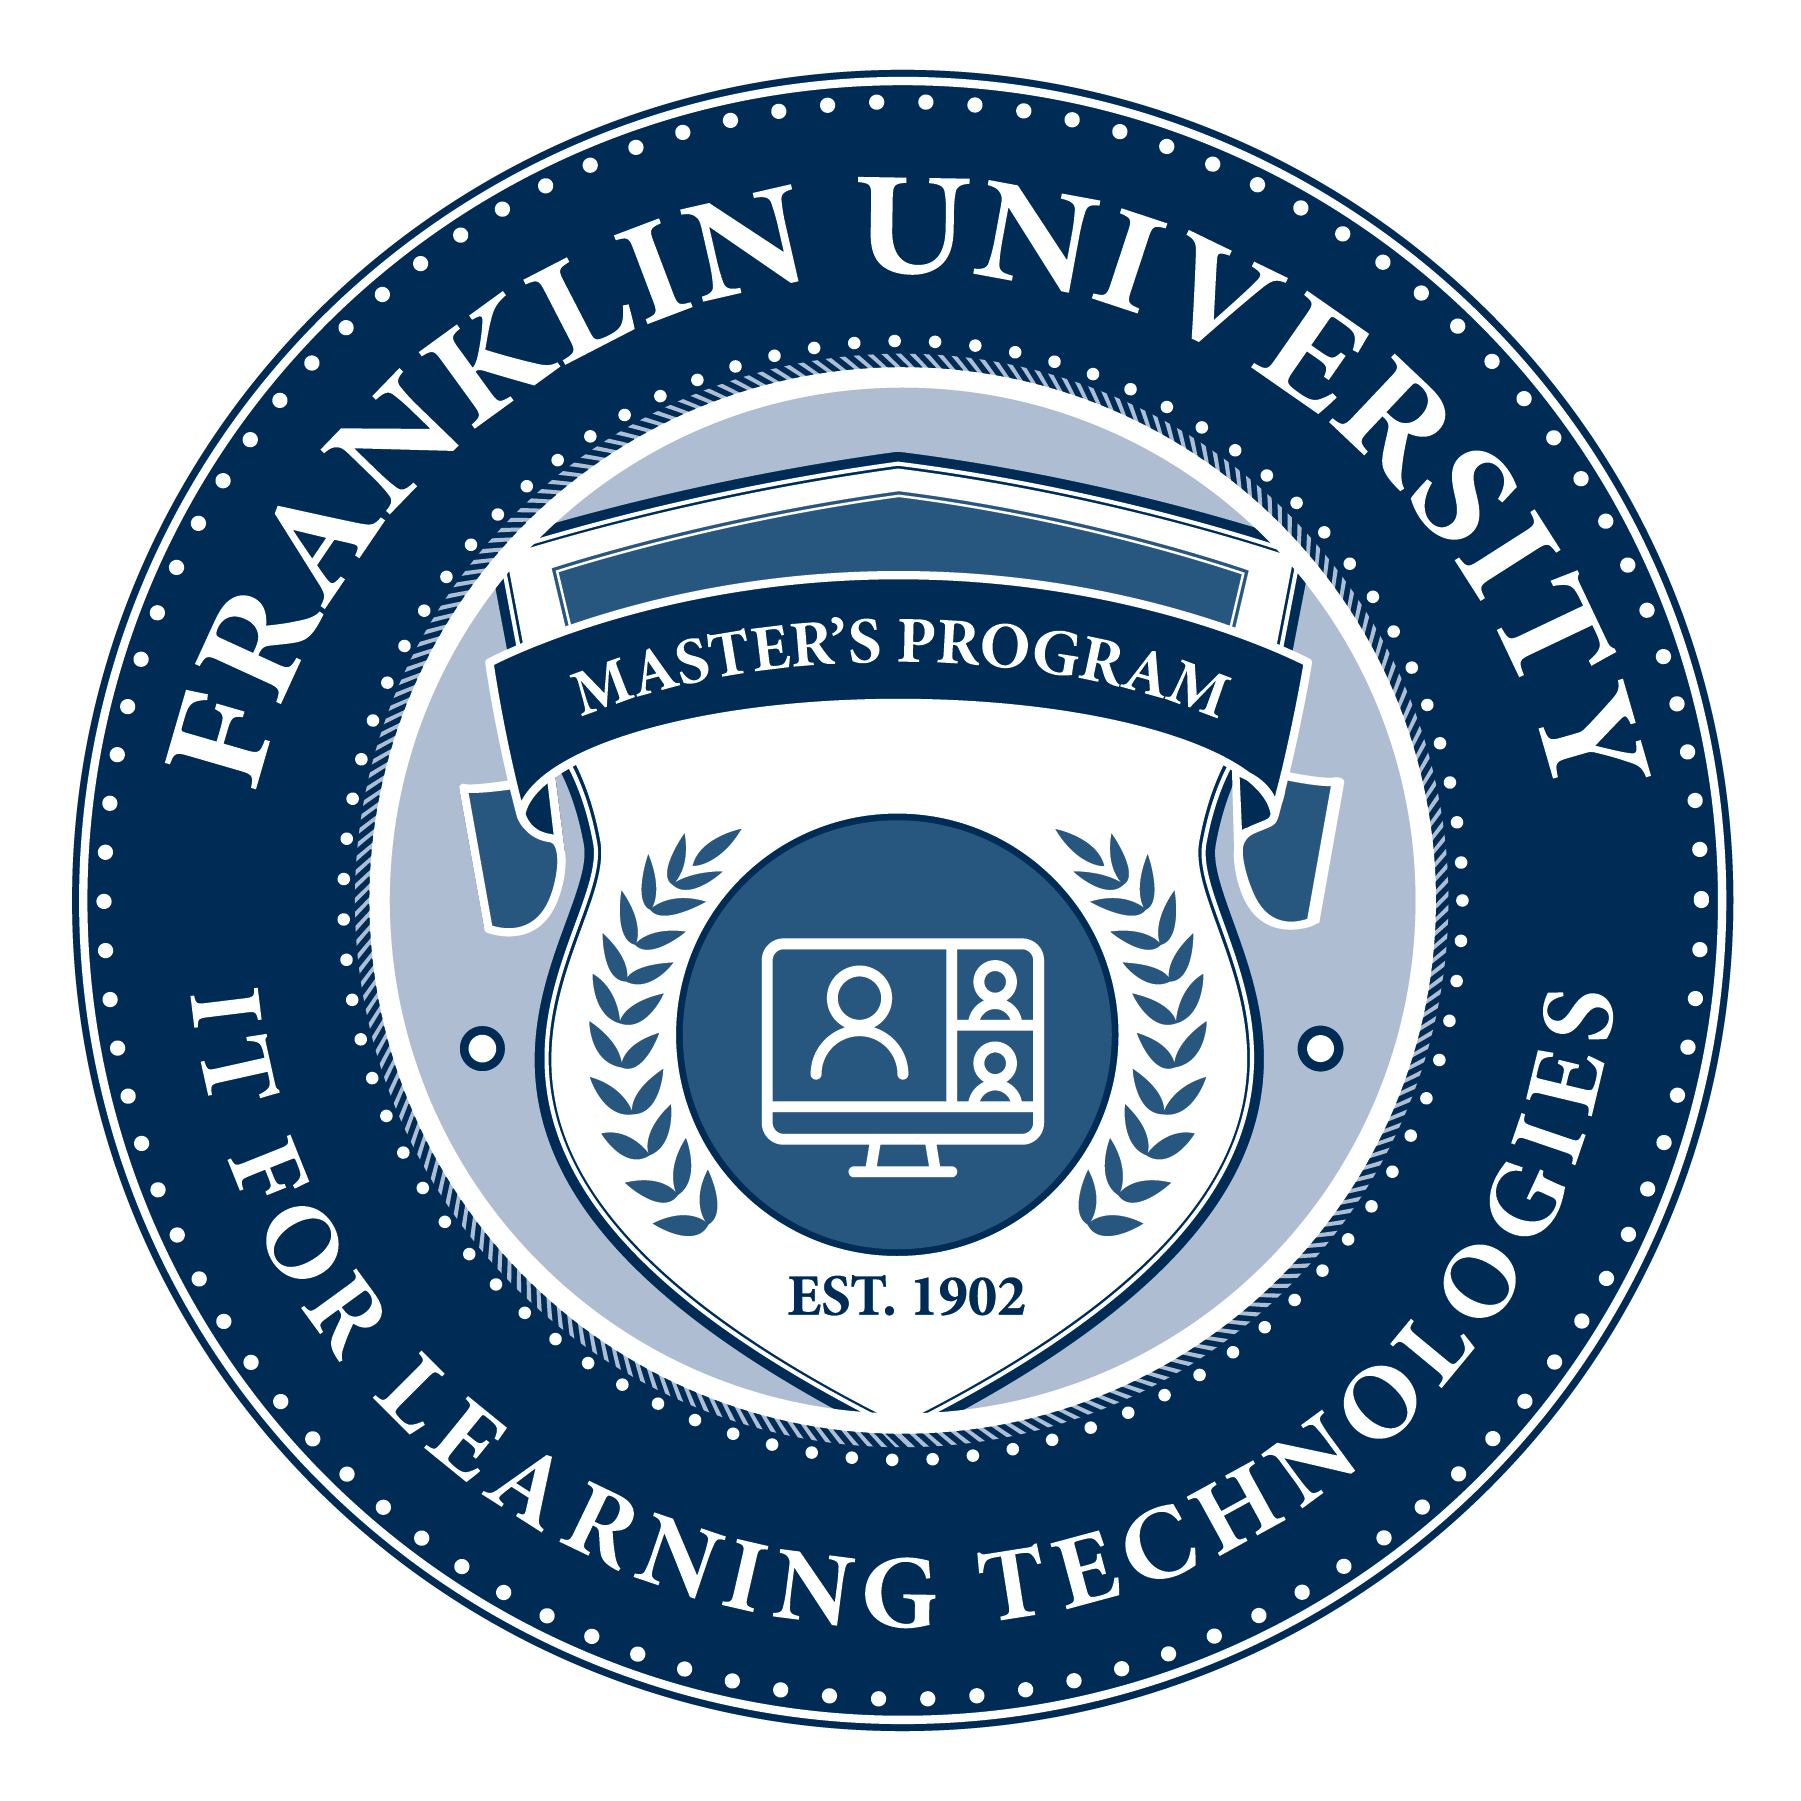 IT for Learning Technologies